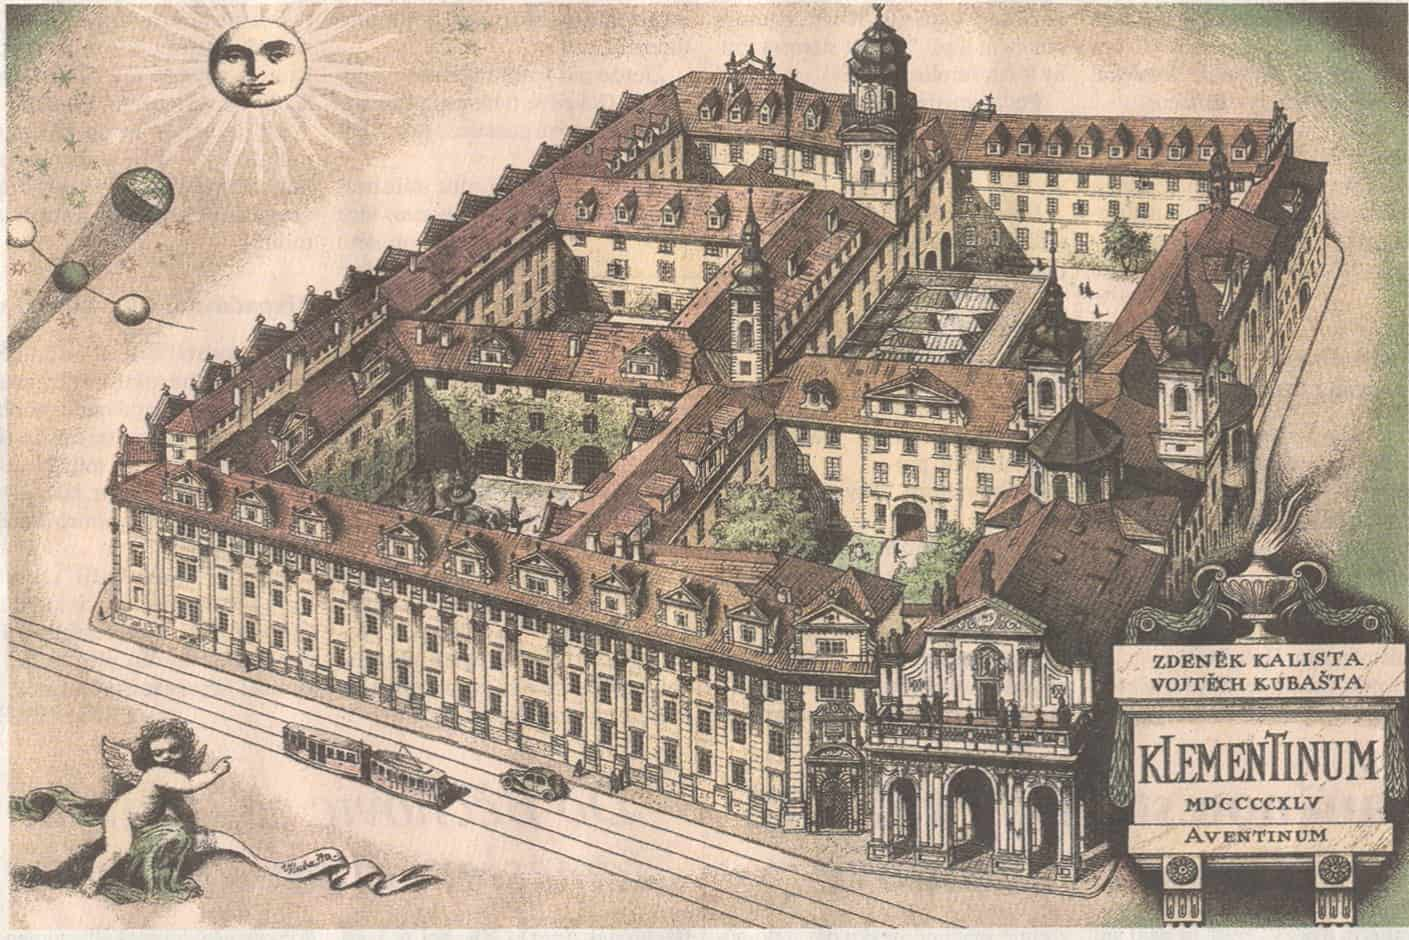 Drawing of the Clementinum and the National Library